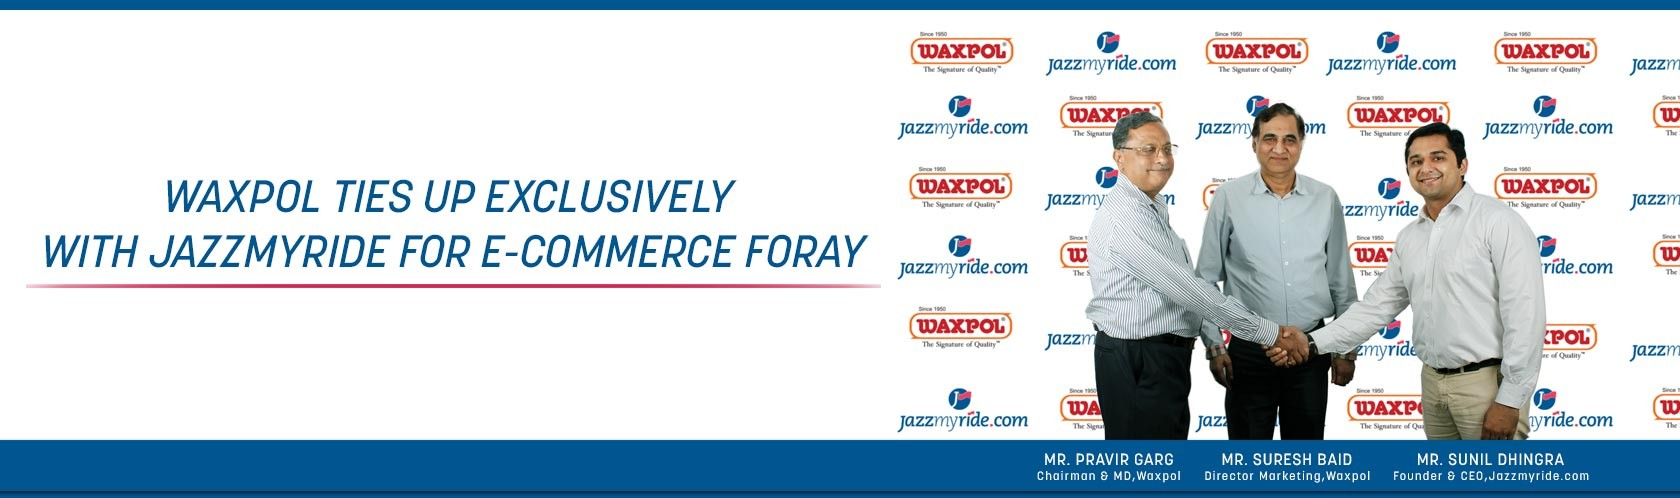 Waxpol ties with Jazzmyride for ecommerce